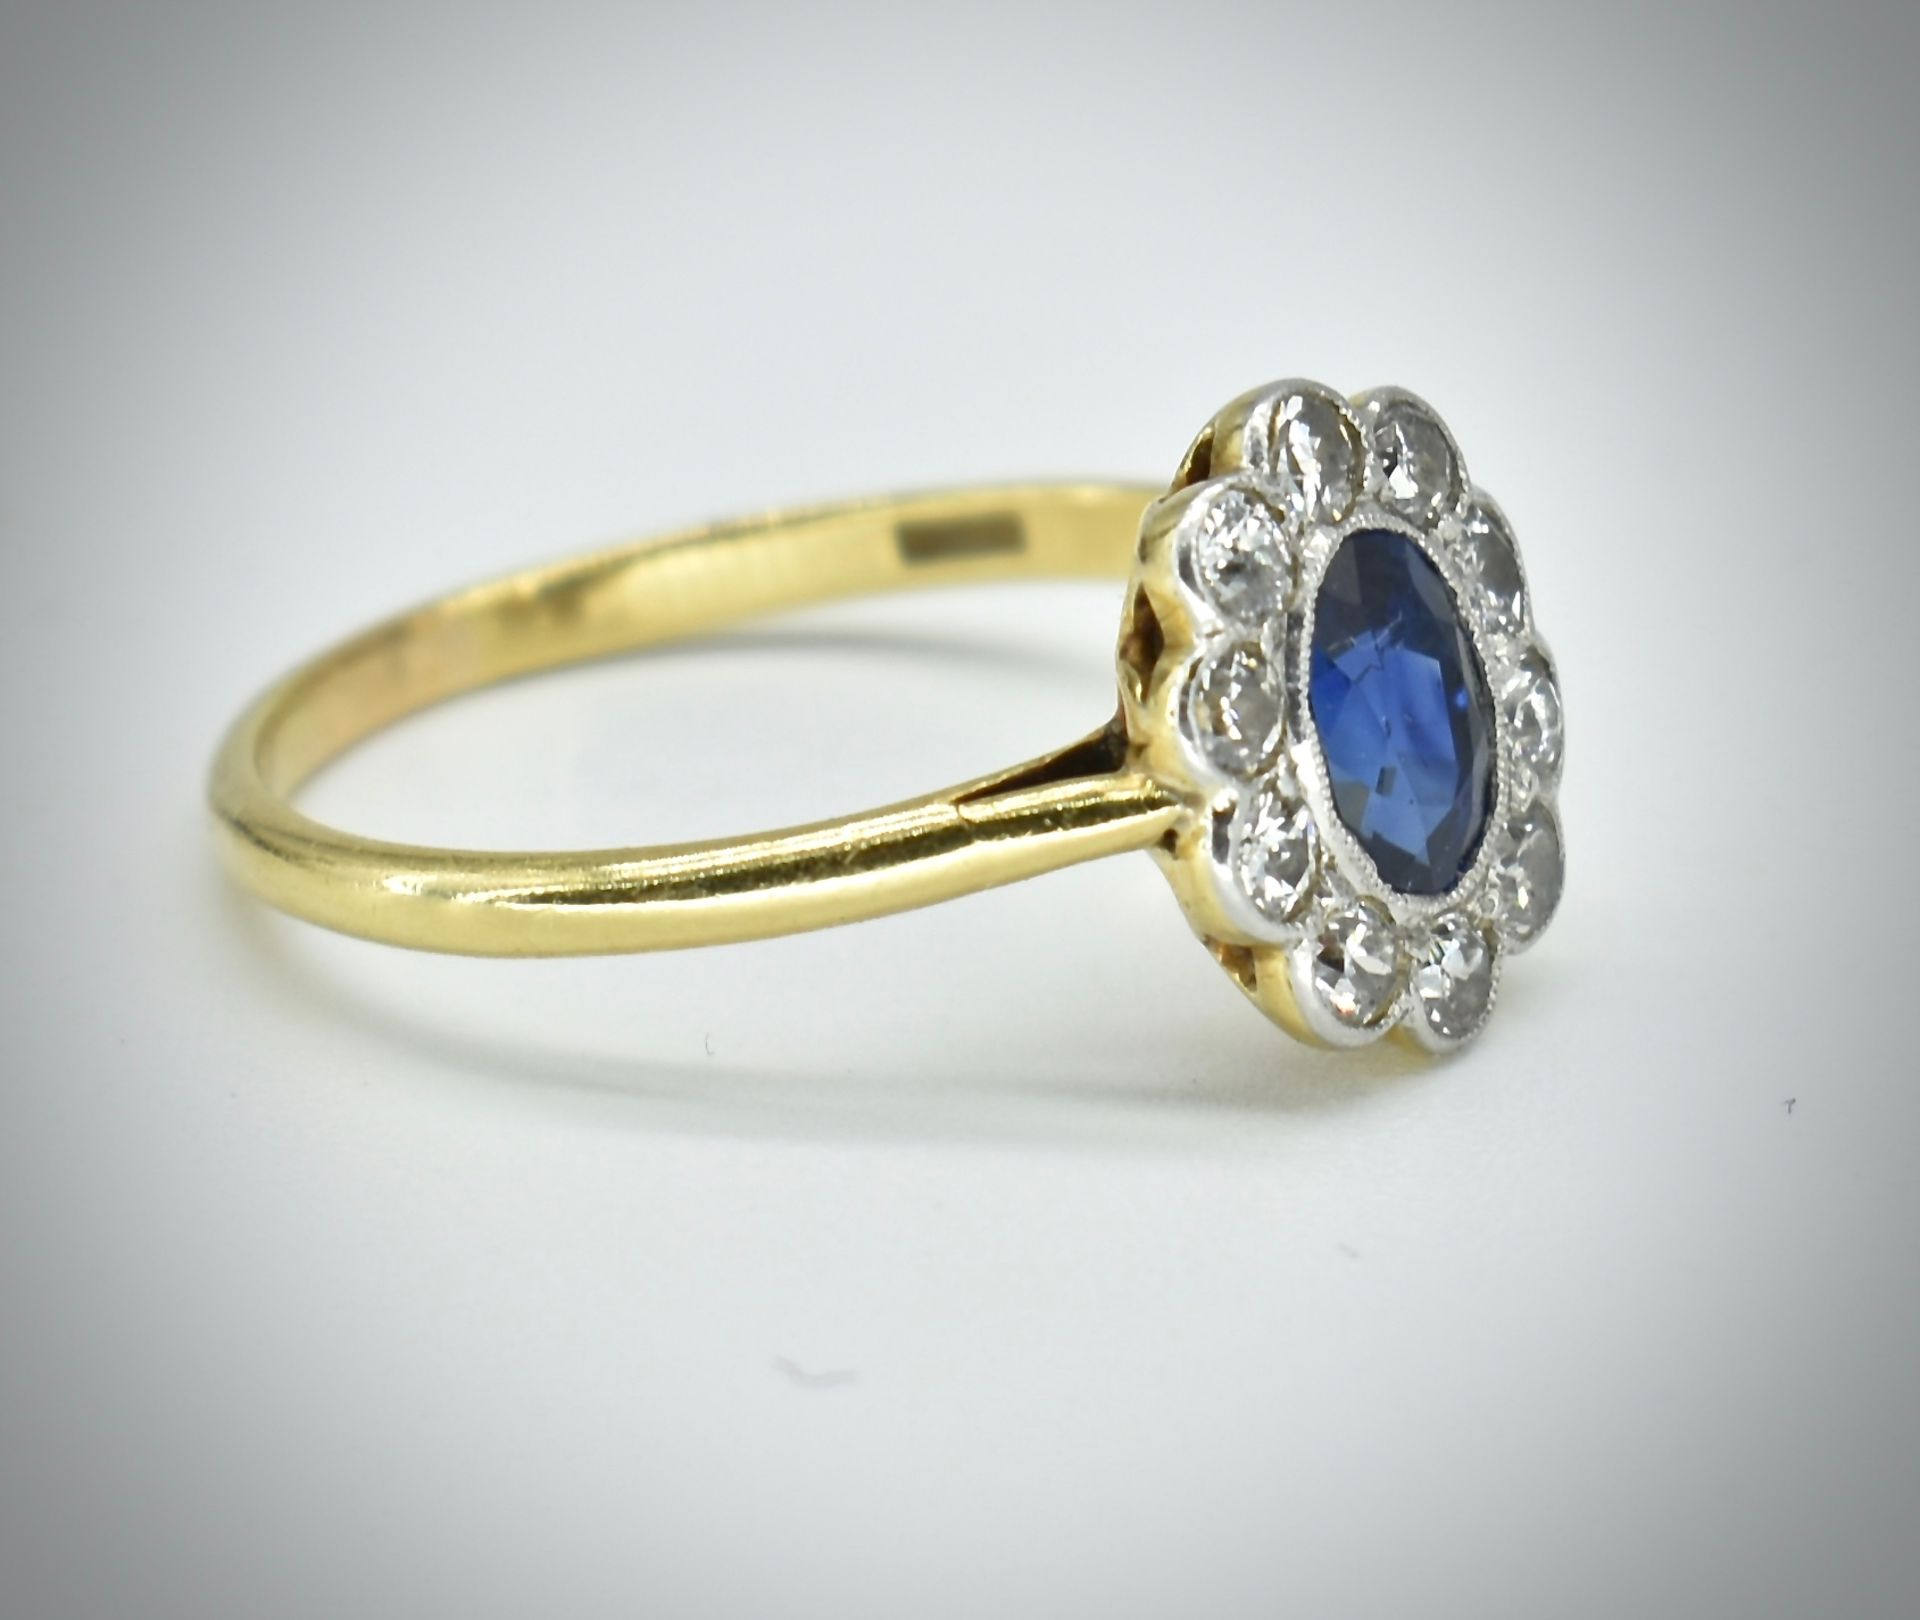 18ct Gold Sapphire & Diamond Cluster Ring - Image 5 of 6